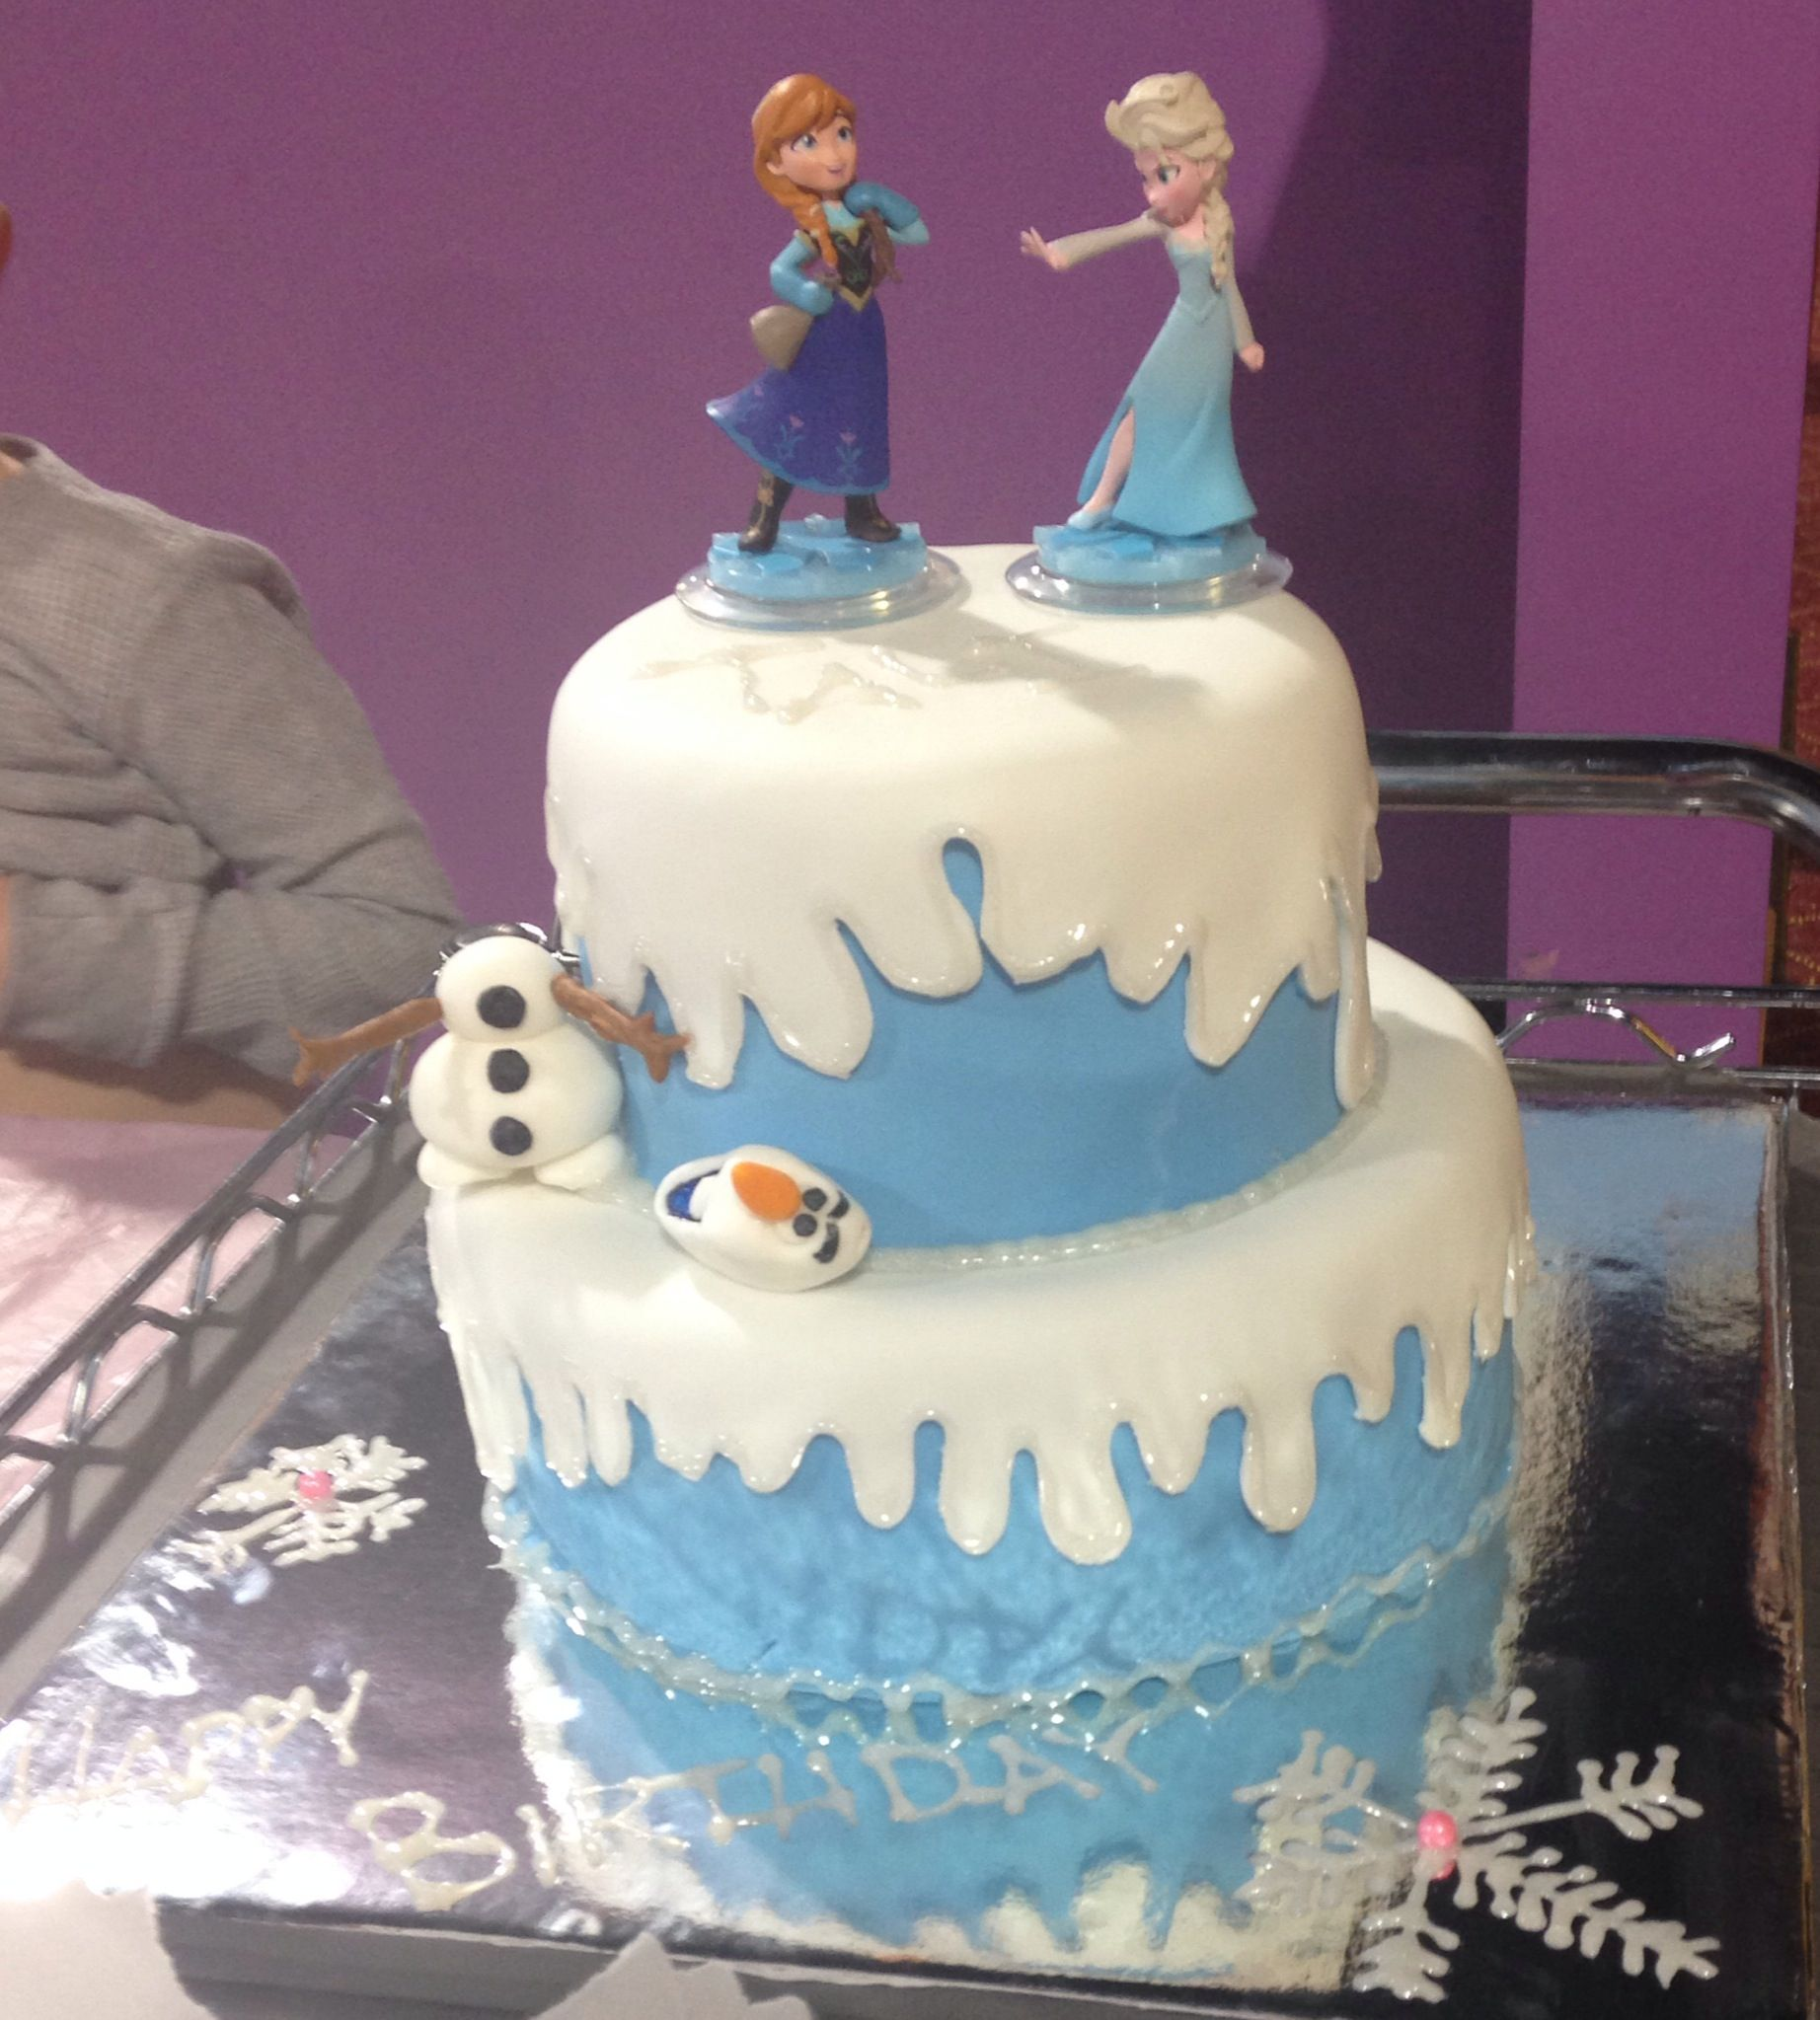 Strange Disney Frozen Birthday Cake For A 4 Year Old Hillymills Cakes Personalised Birthday Cards Veneteletsinfo